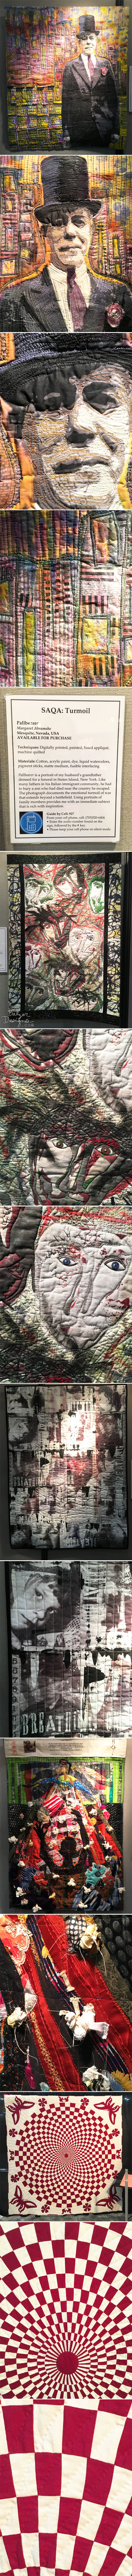 From the Balzer Designs Blog: Quilt Festival 2016: Part Two #quilting